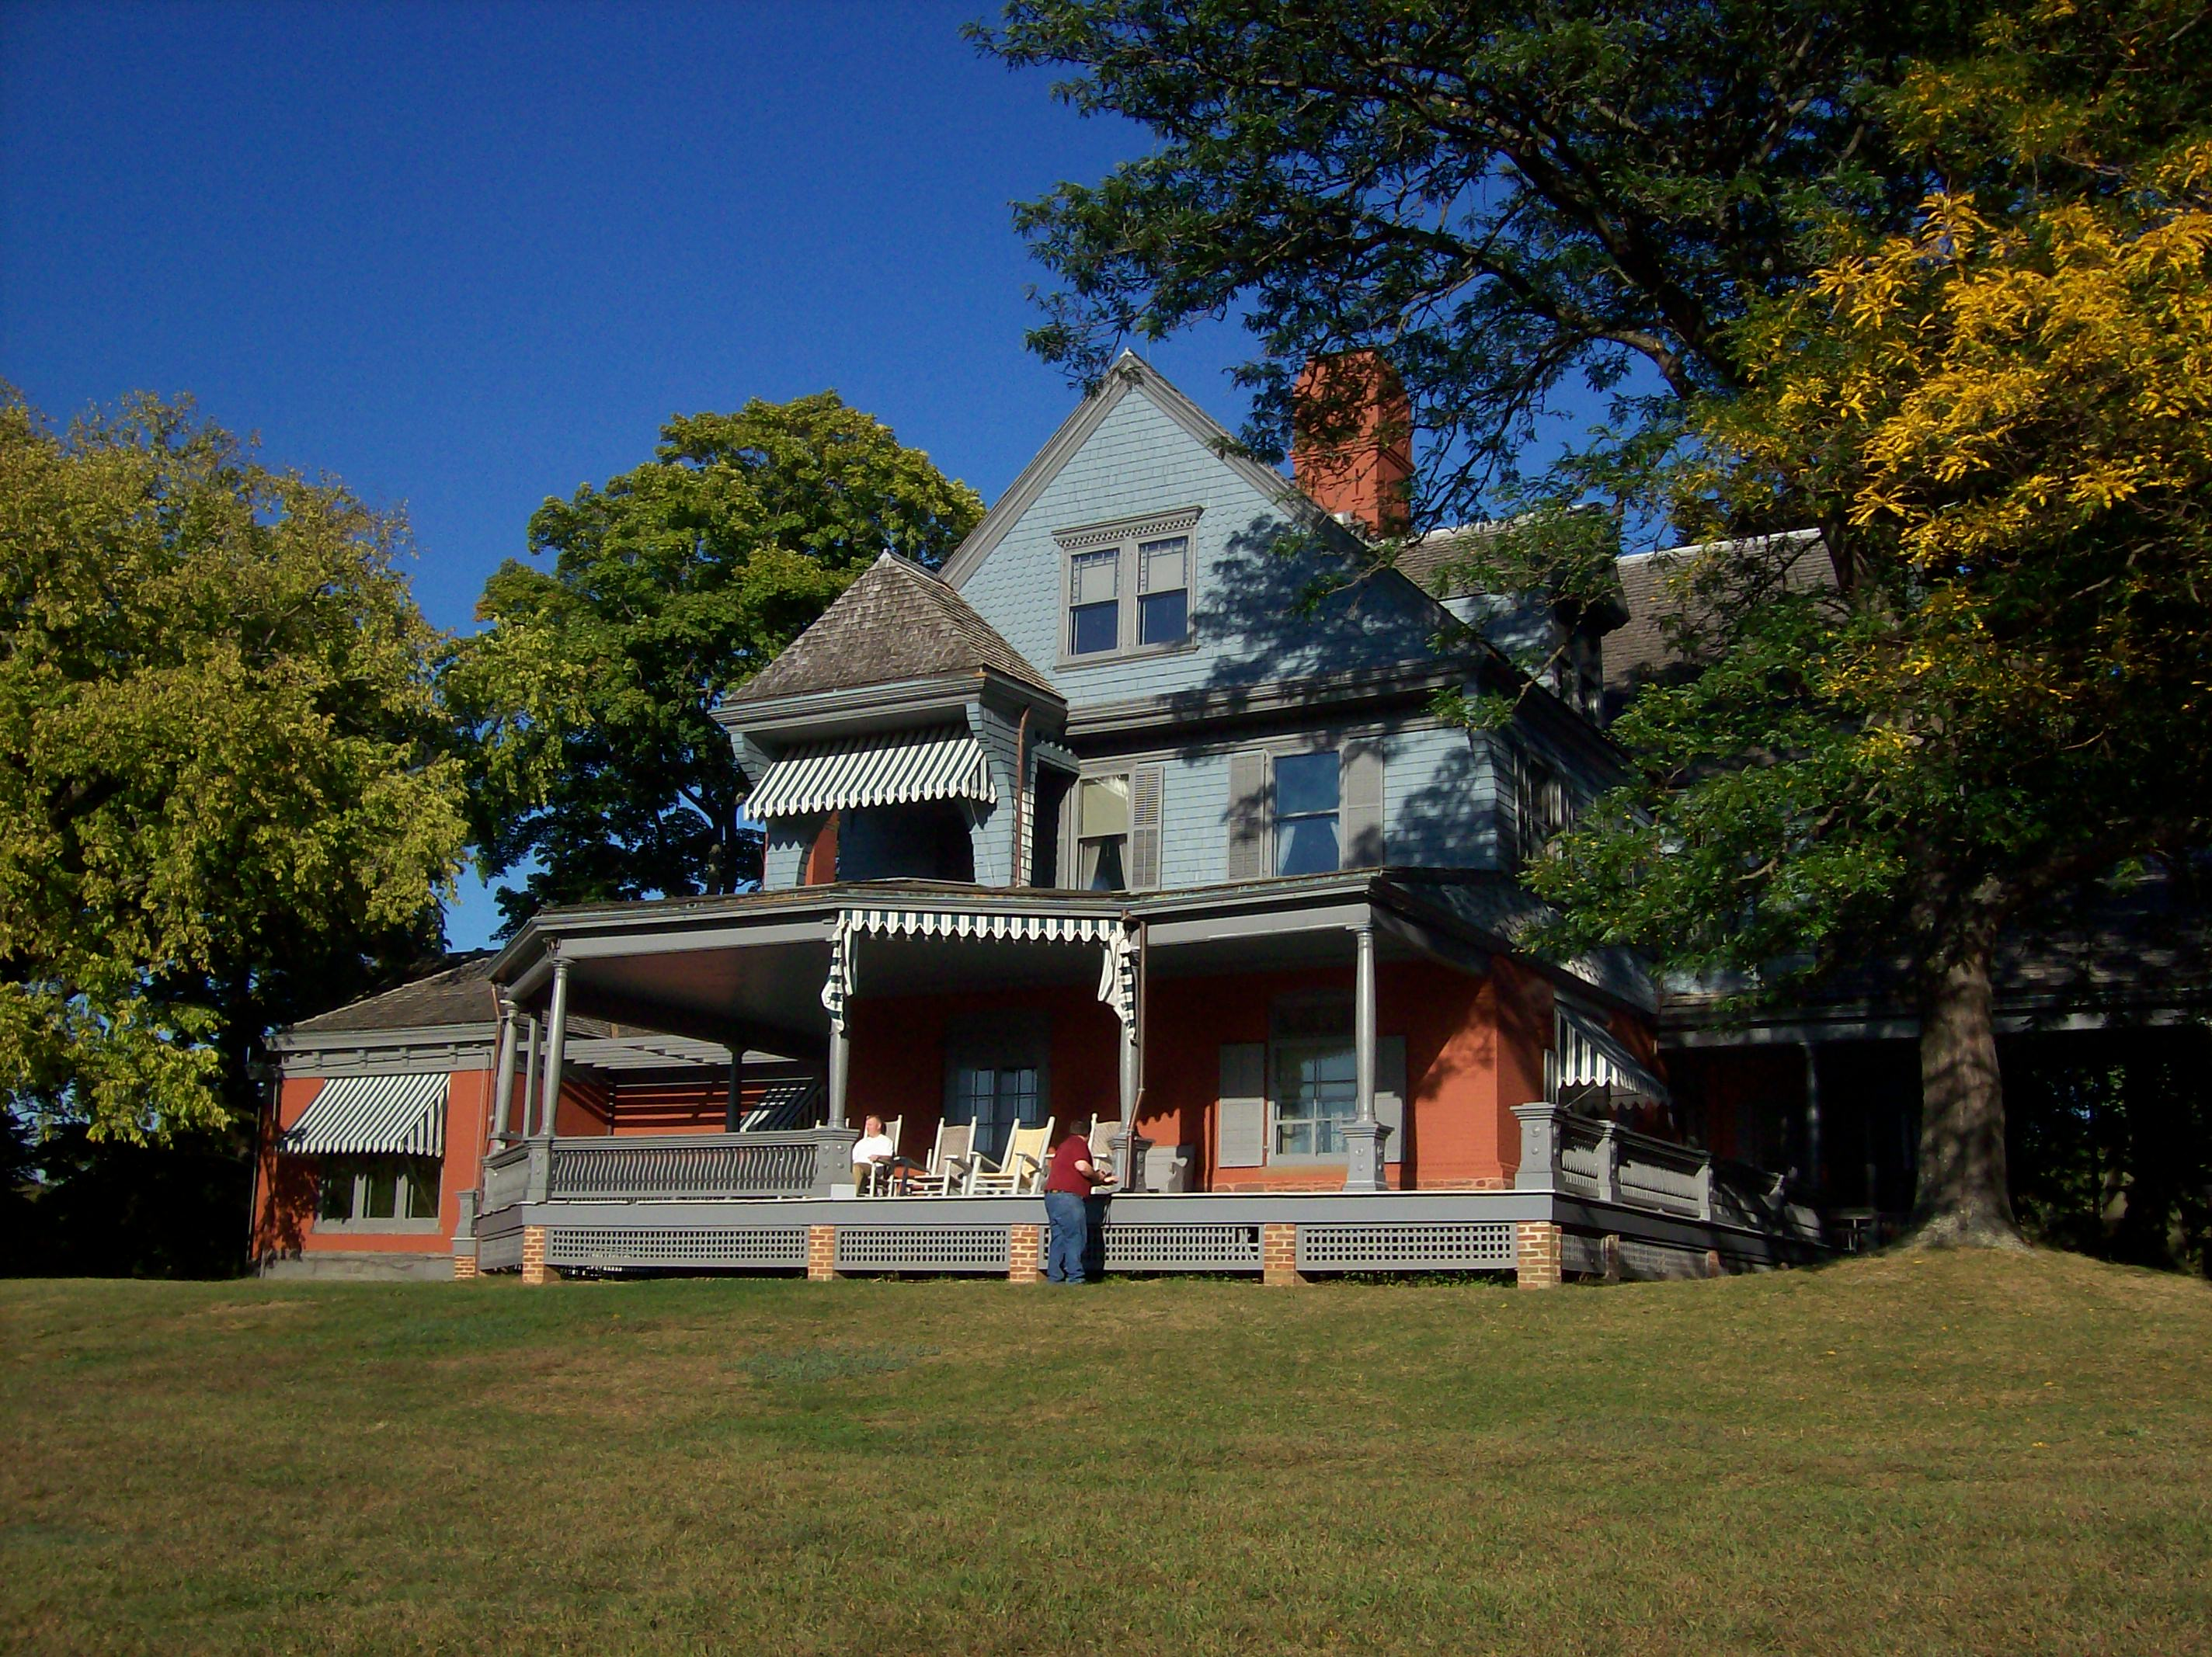 The home of Theodore Roosevelt, Sagamore Hill, is a National Historic Site